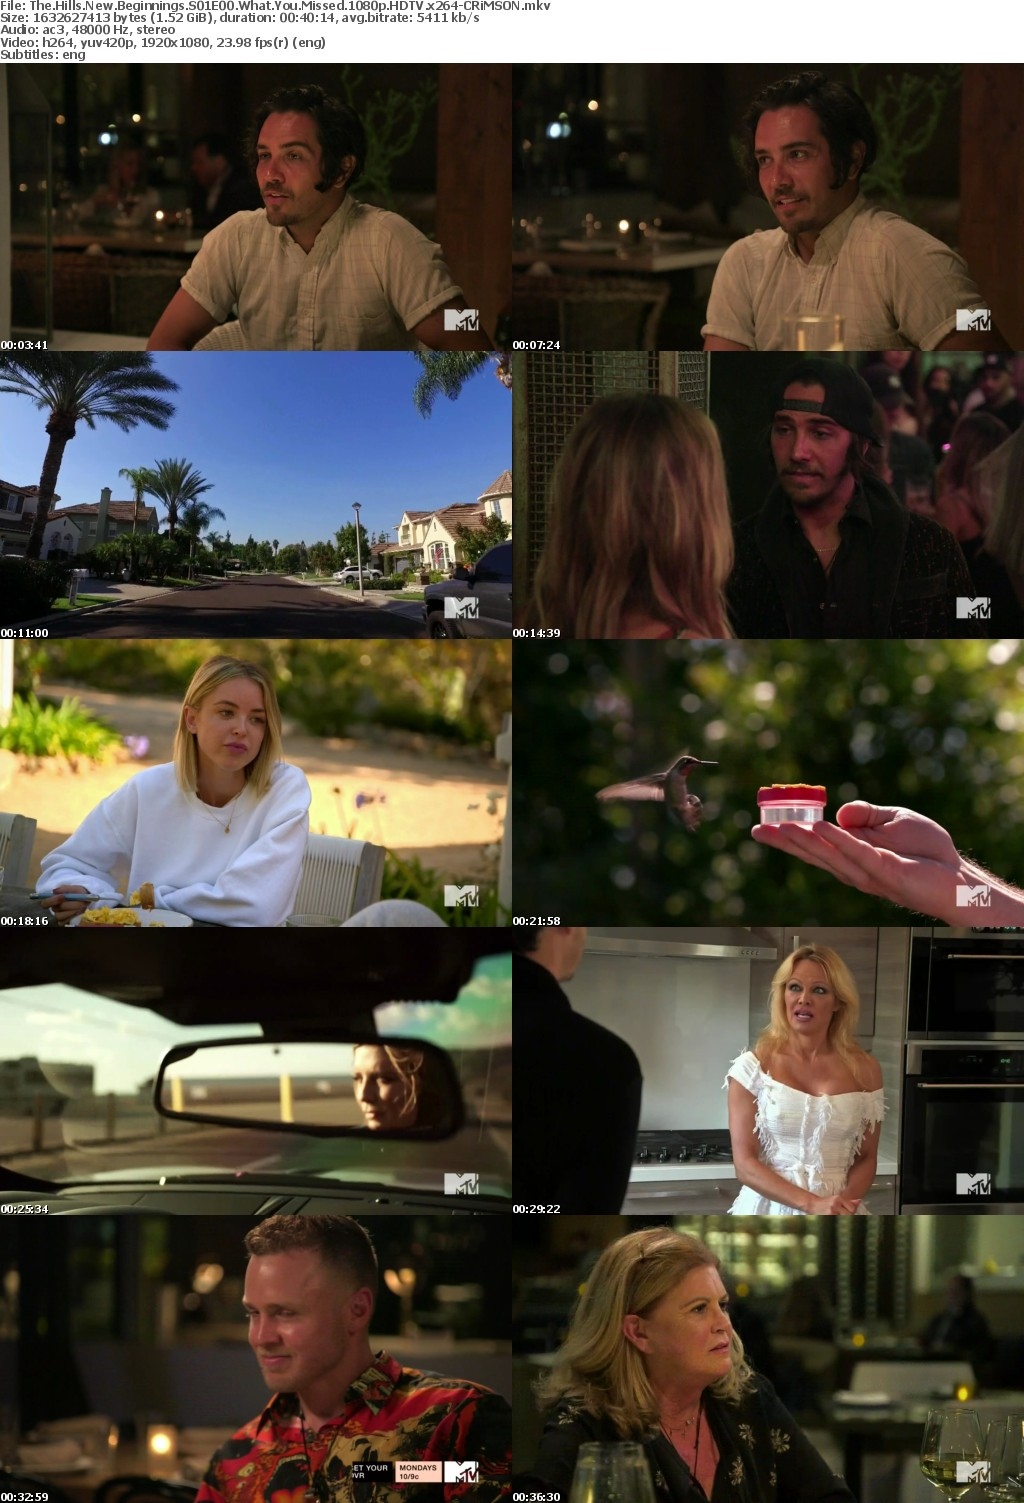 The Hills New Beginnings S01E00 What You Missed 1080p HDTV x264-CRiMSON